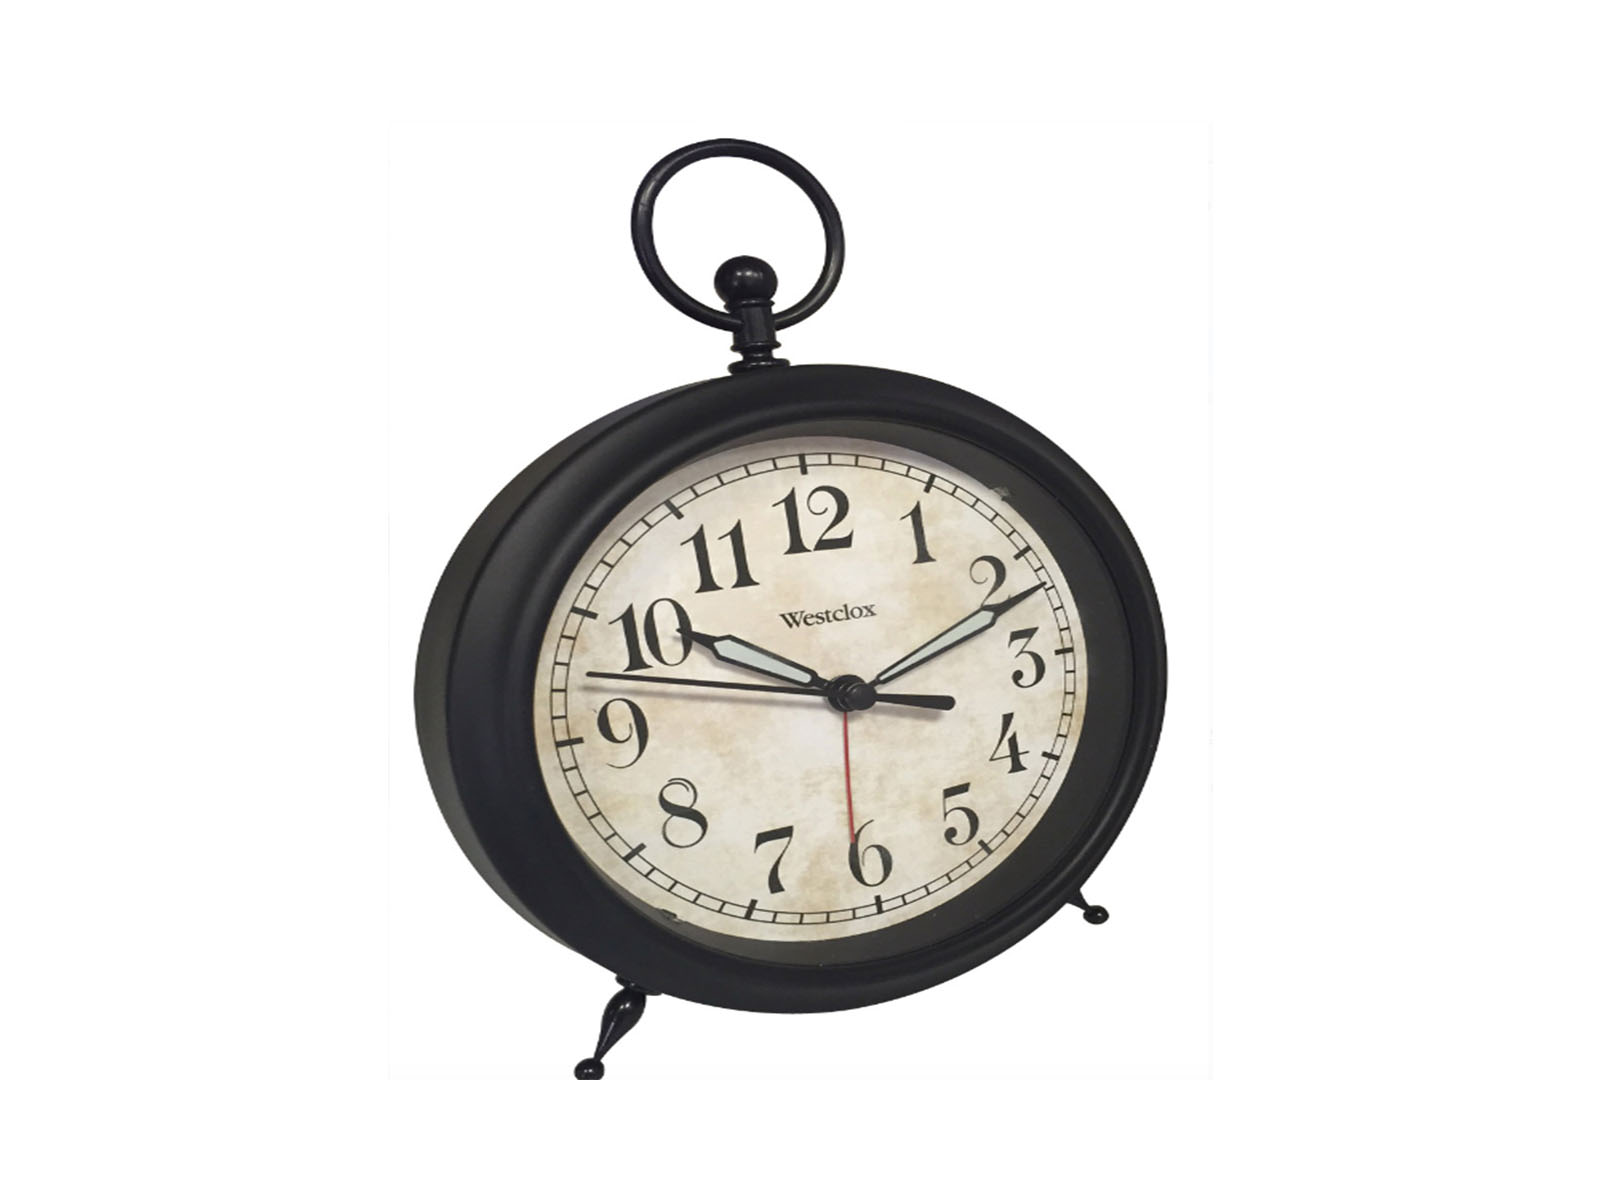 Westclox Top Ring Decor Alarm Clock